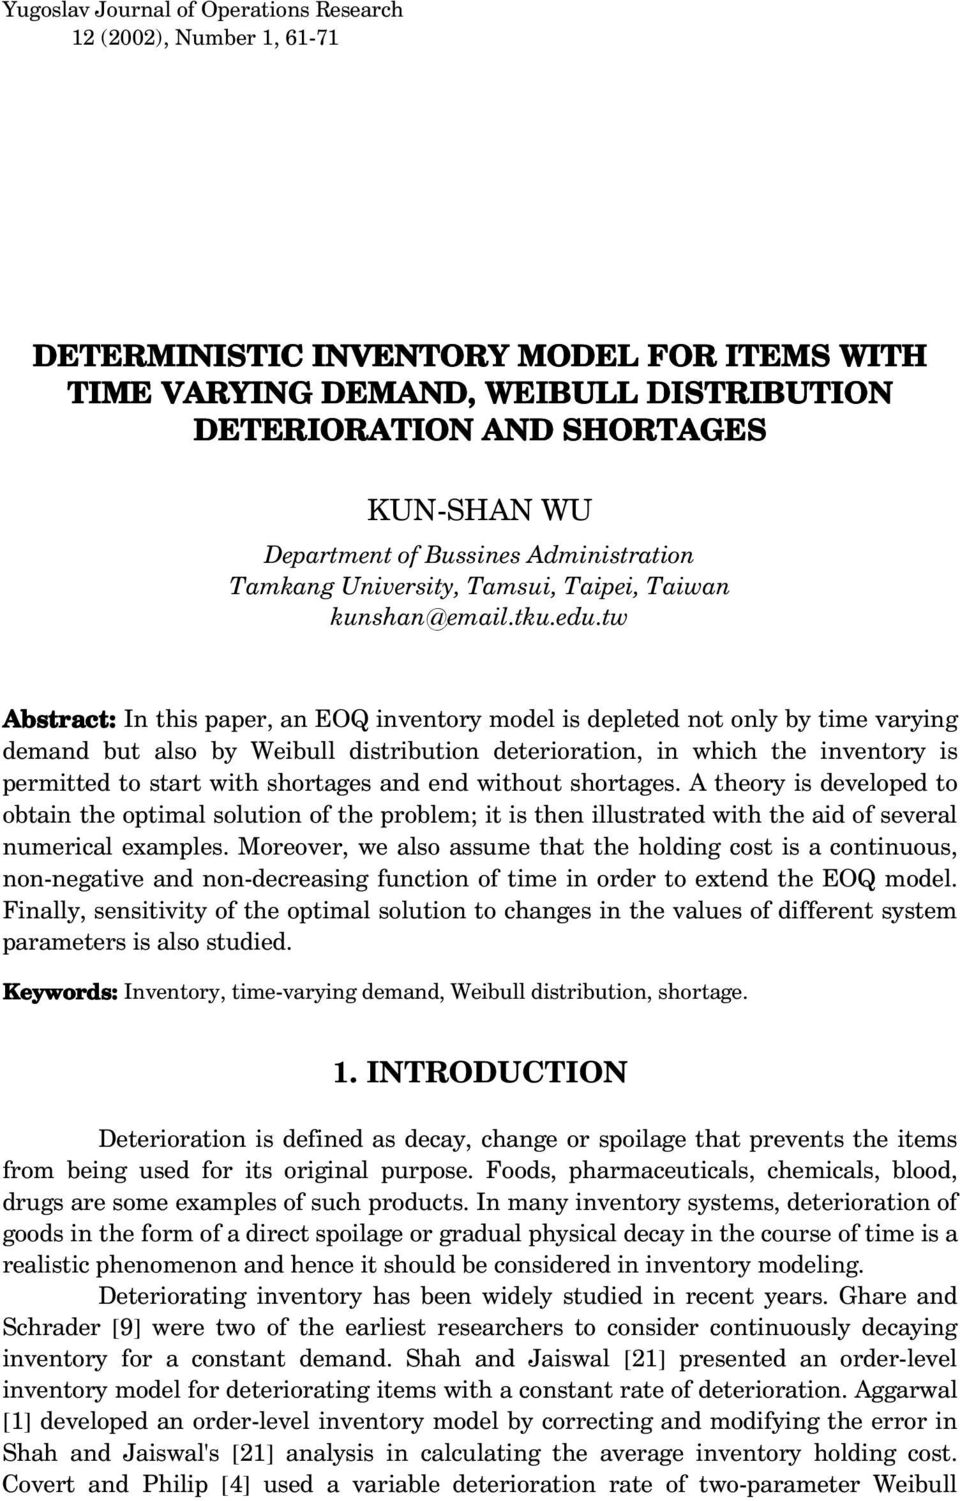 w Absrac: In his paper, an EOQ invenory model is depleed no only by ime varying demand bu also by Weibull disribuion deerioraion, in which he invenory is permied o sar wih shorages and end wihou